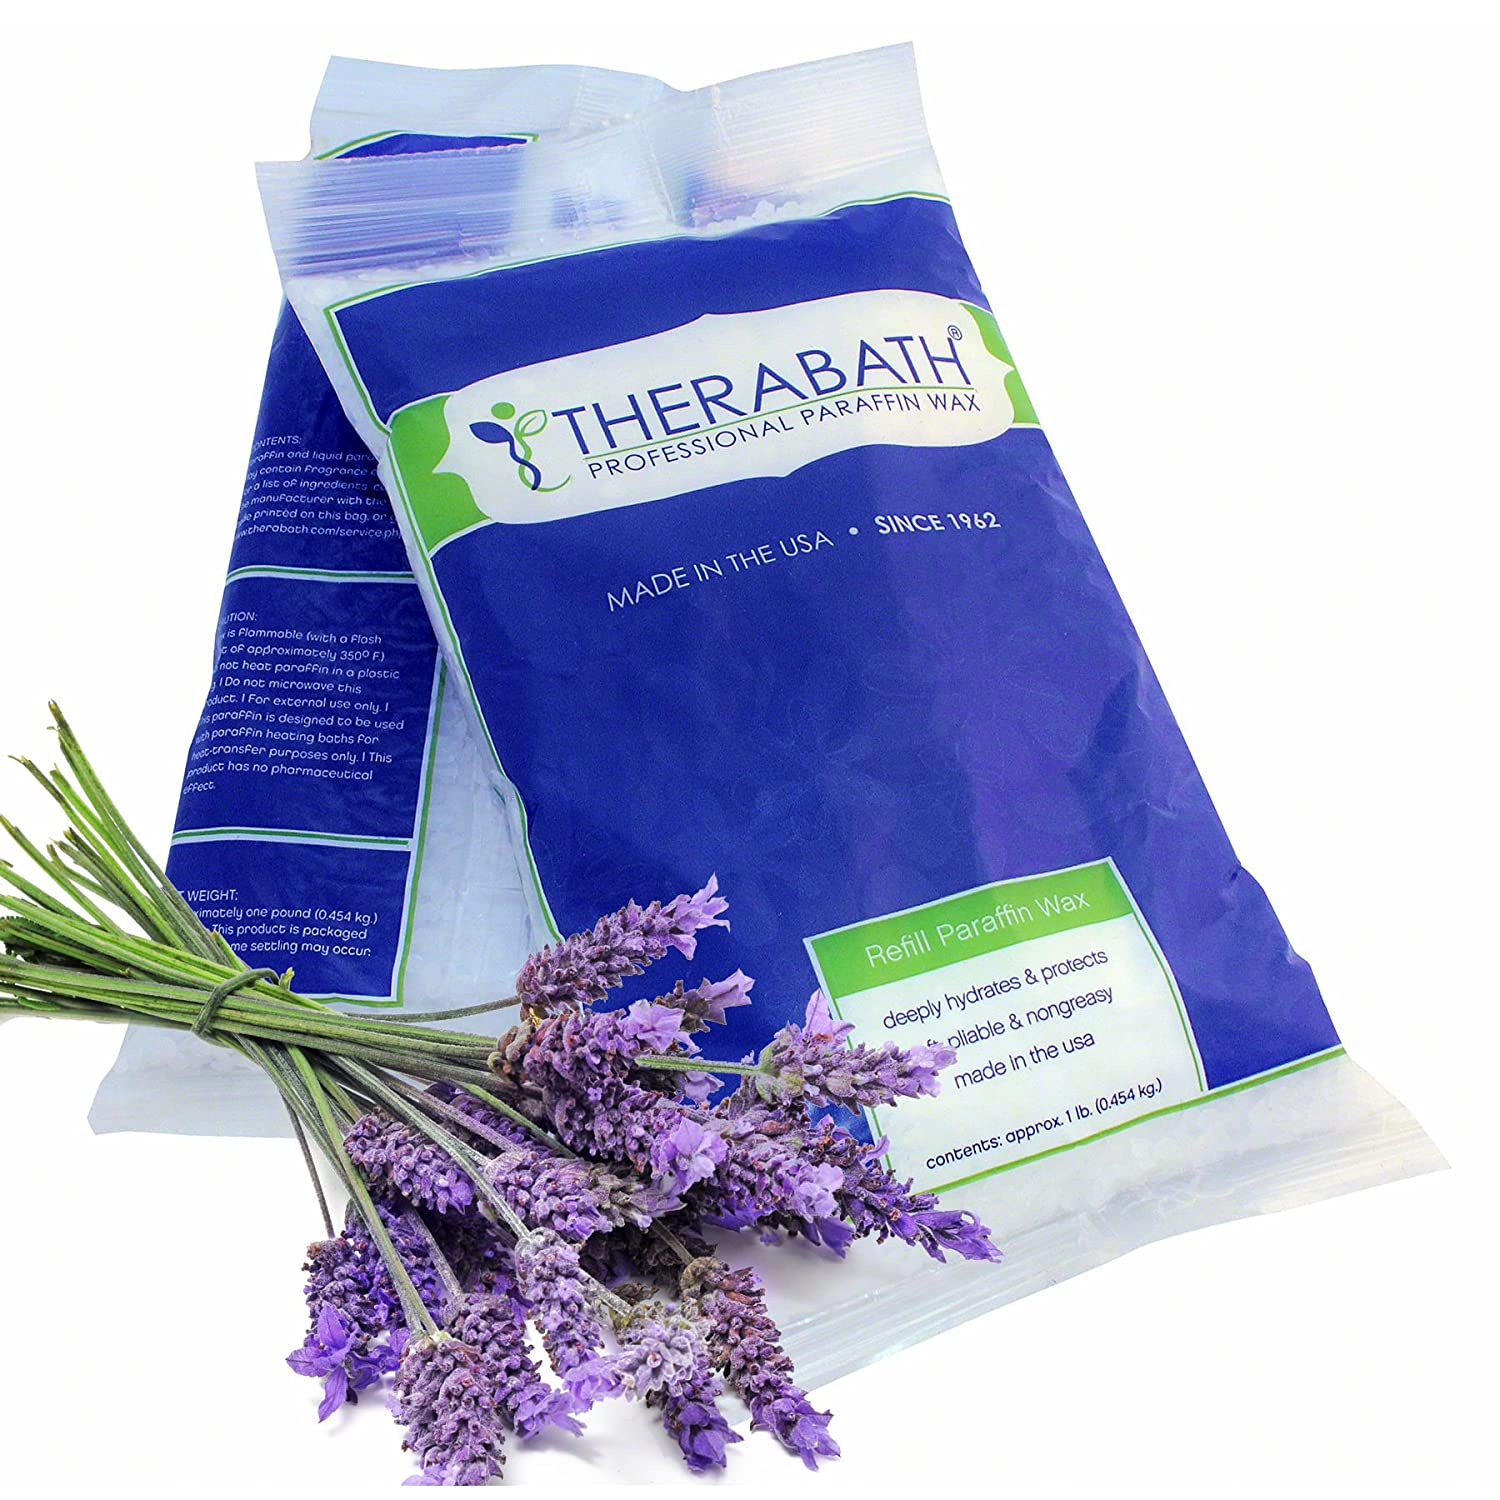 Wr Medical Paraffin Wax Refill Therabath, Lavender Harmony Beads, 1.06 Pound Global Supply Outlet 0107-4